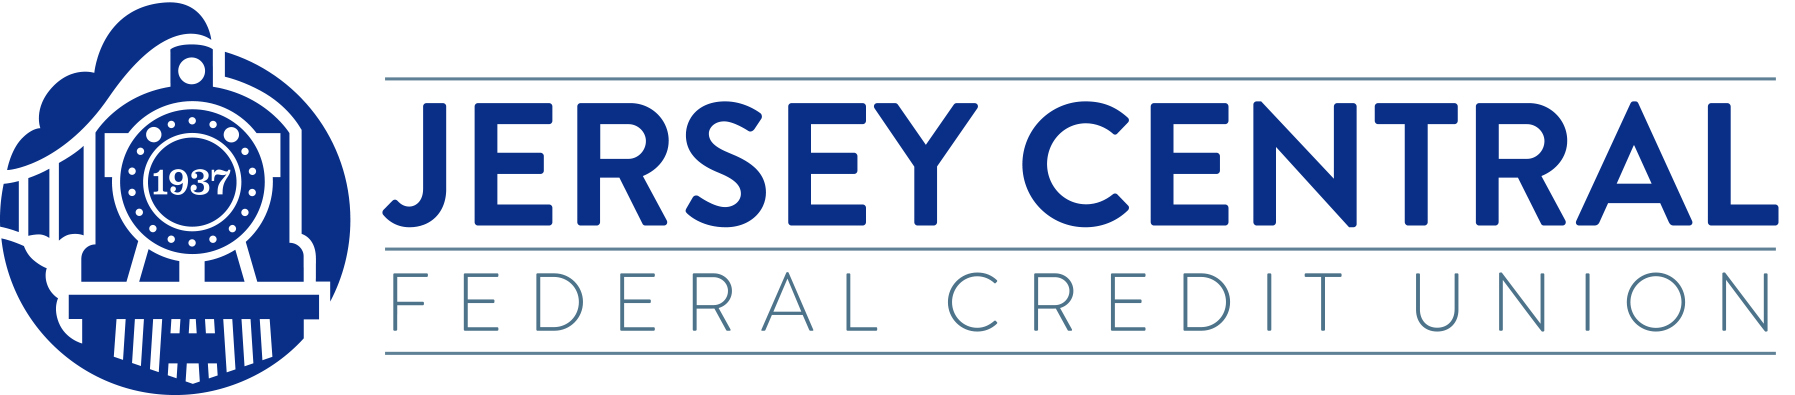 Jersey Central Federal Credit Union